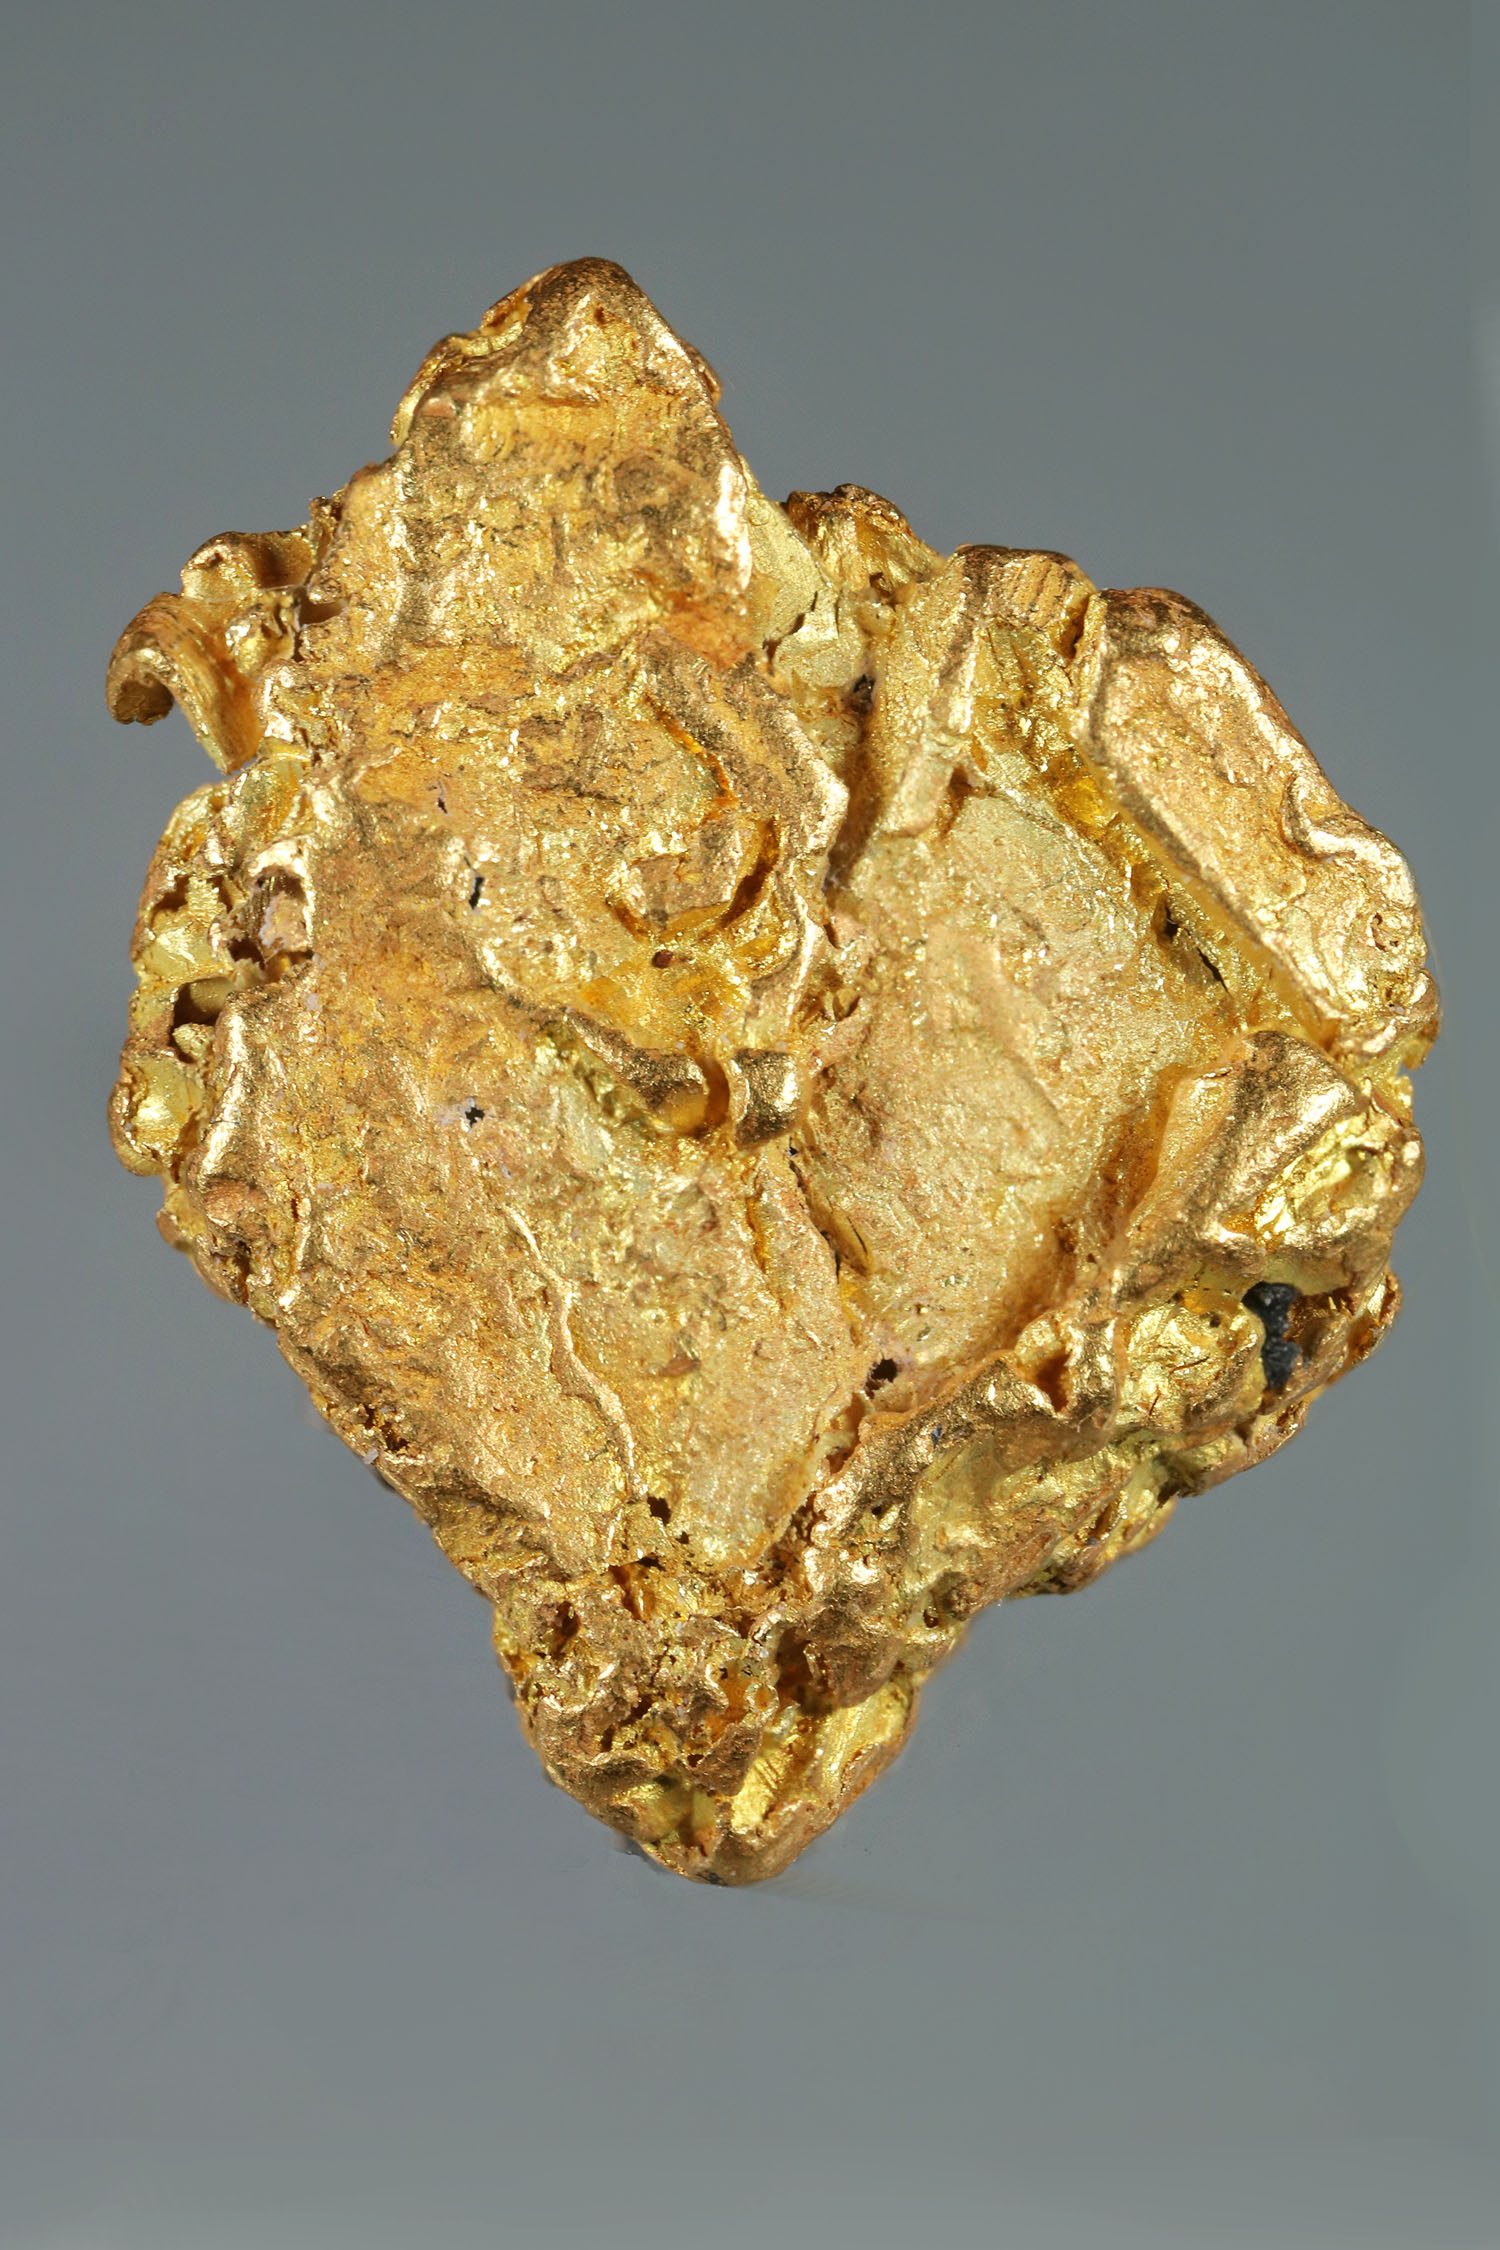 Yukon Gold Nugget with Crystalized Gold